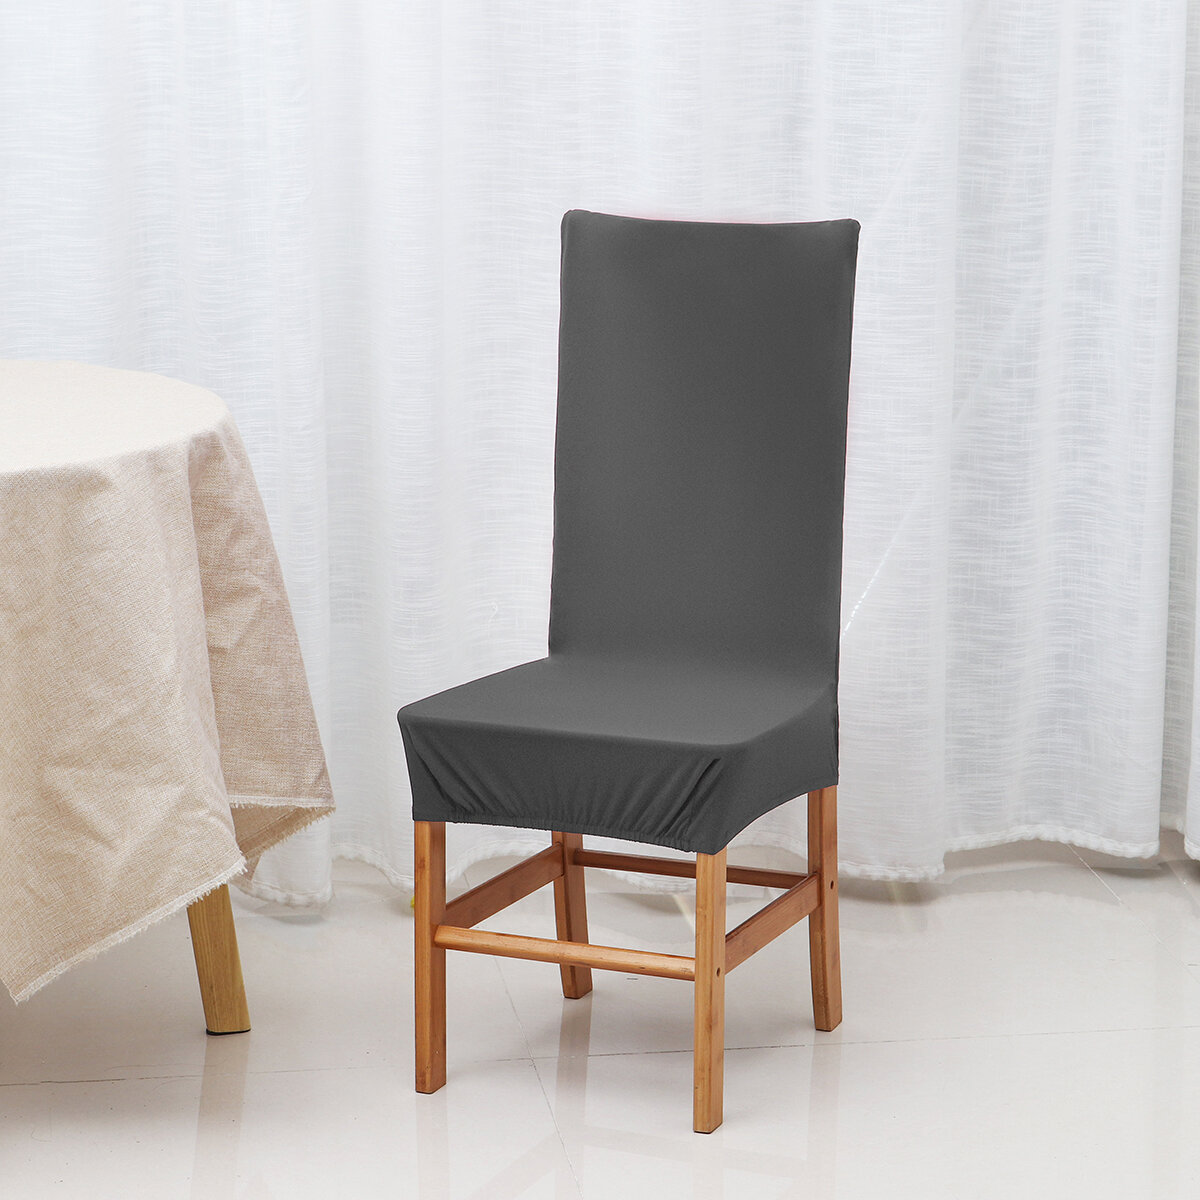 Solid Color Chair Cover Spandex Stretch Elastic Slipcovers Chair Covers For Dining Room Kitchen Wedding Banquet Hotel